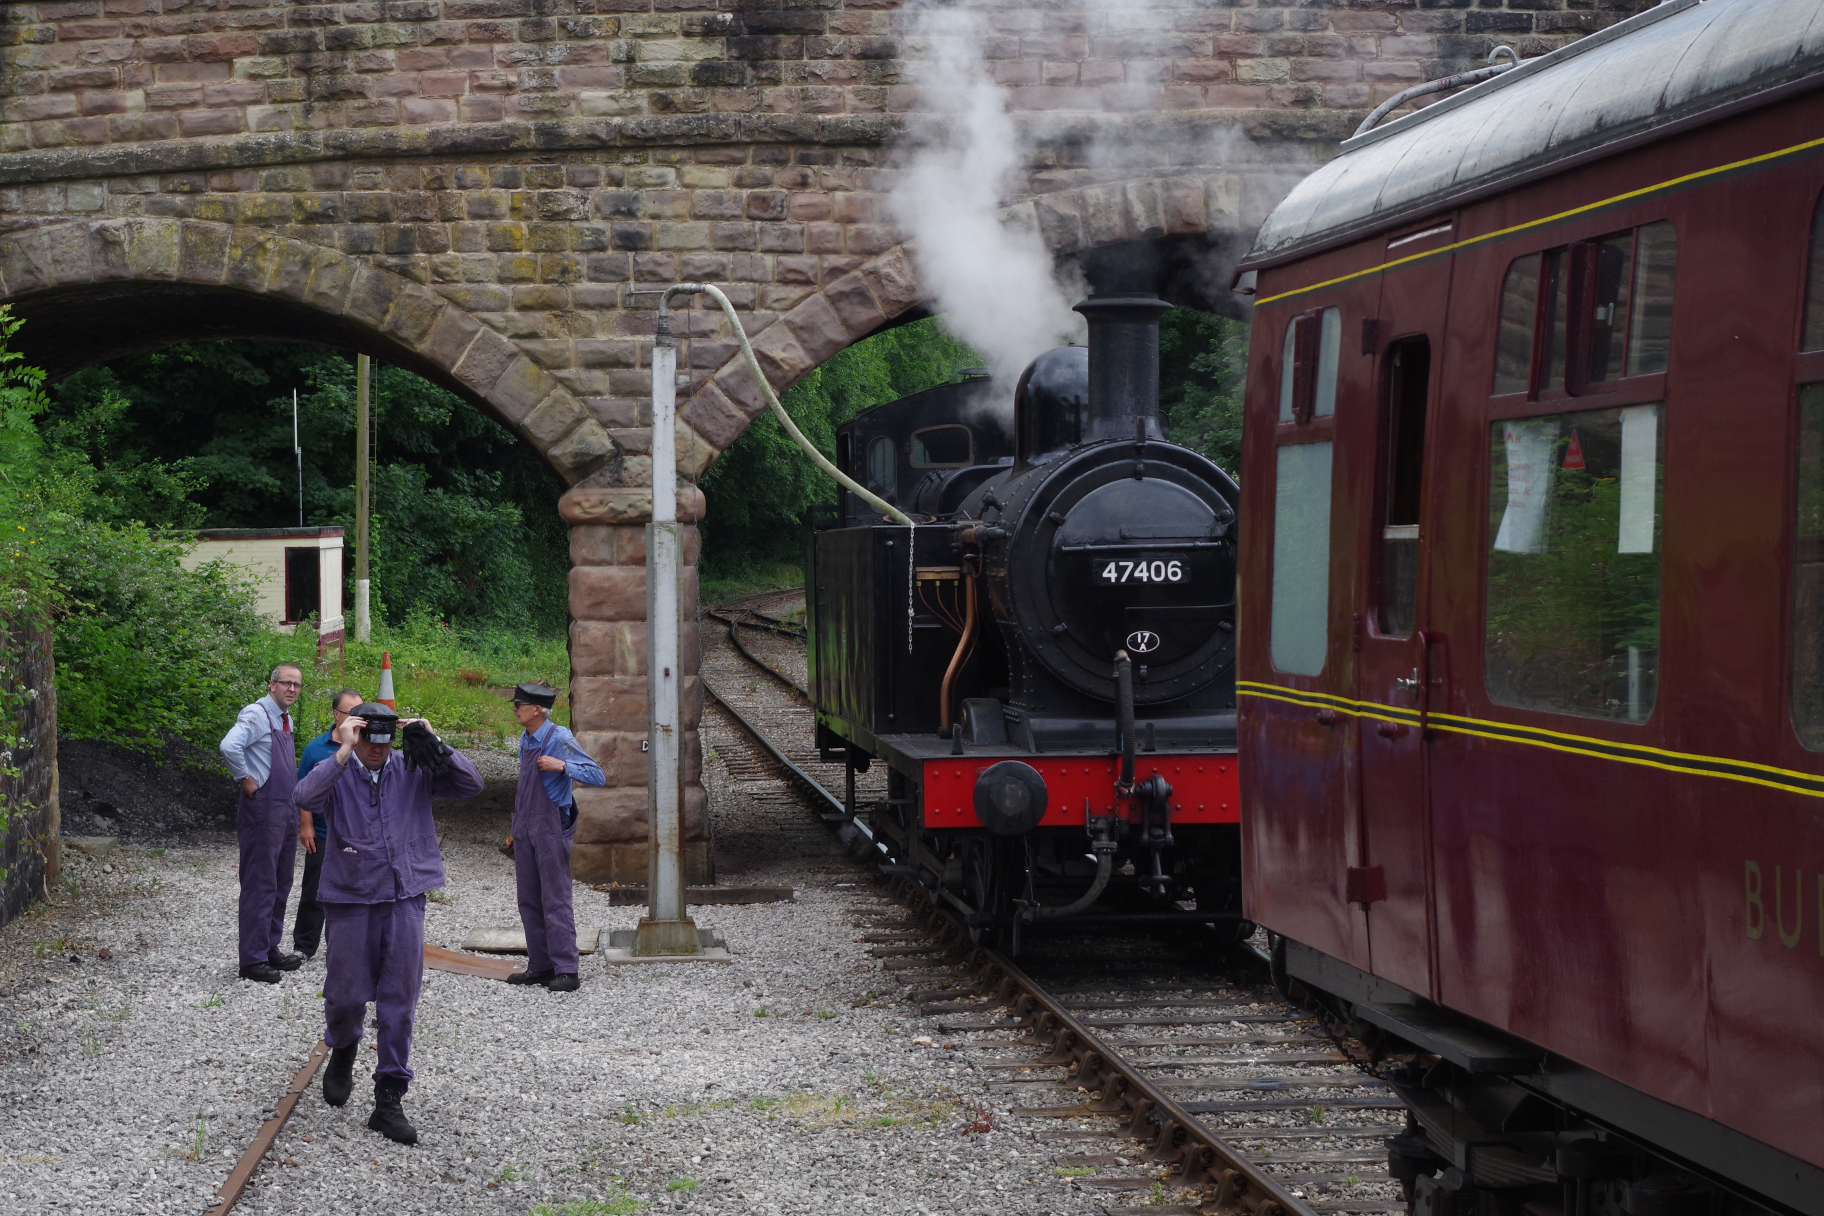 Steam at Wirksworth